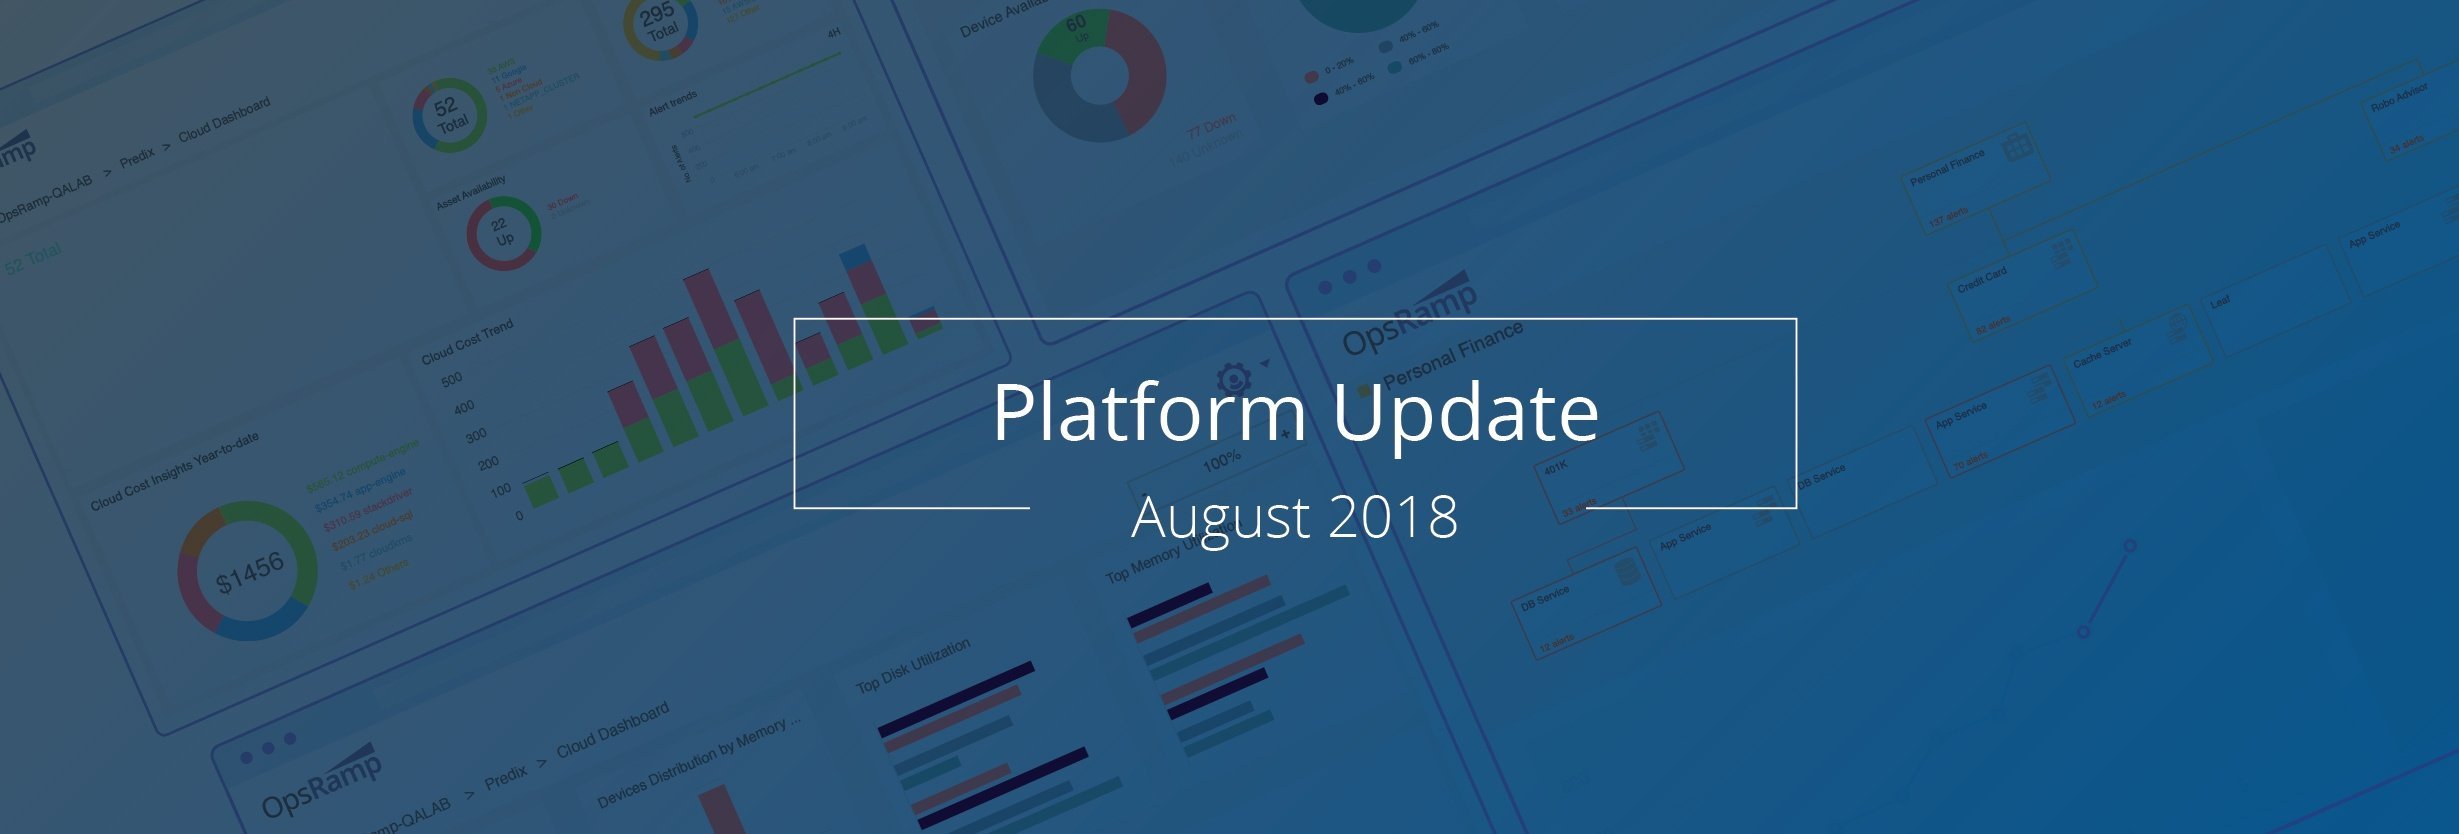 OpsRamp August 2018 Platform Update: Meet Hybrid IT Challenges With Audit Trails, Alerts, And Cloud Management